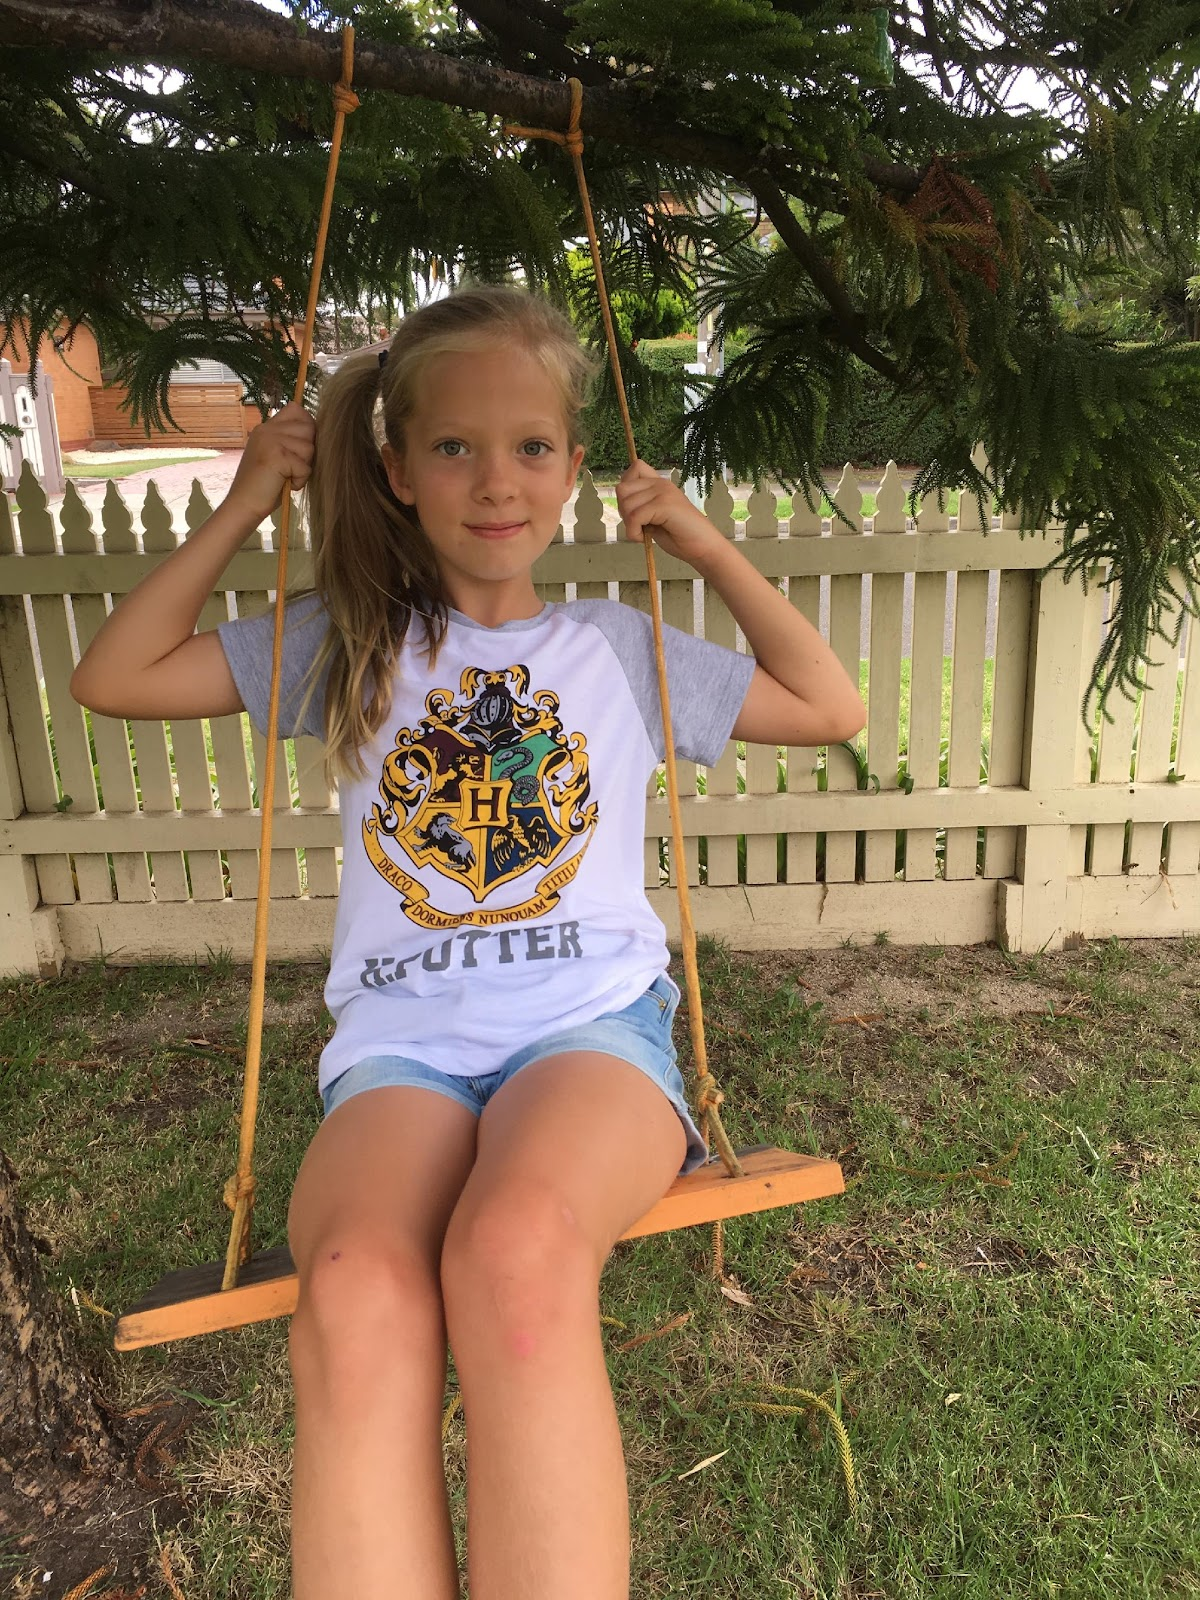 Girl wearing Harry Potter tshirt while sitting on a swing.